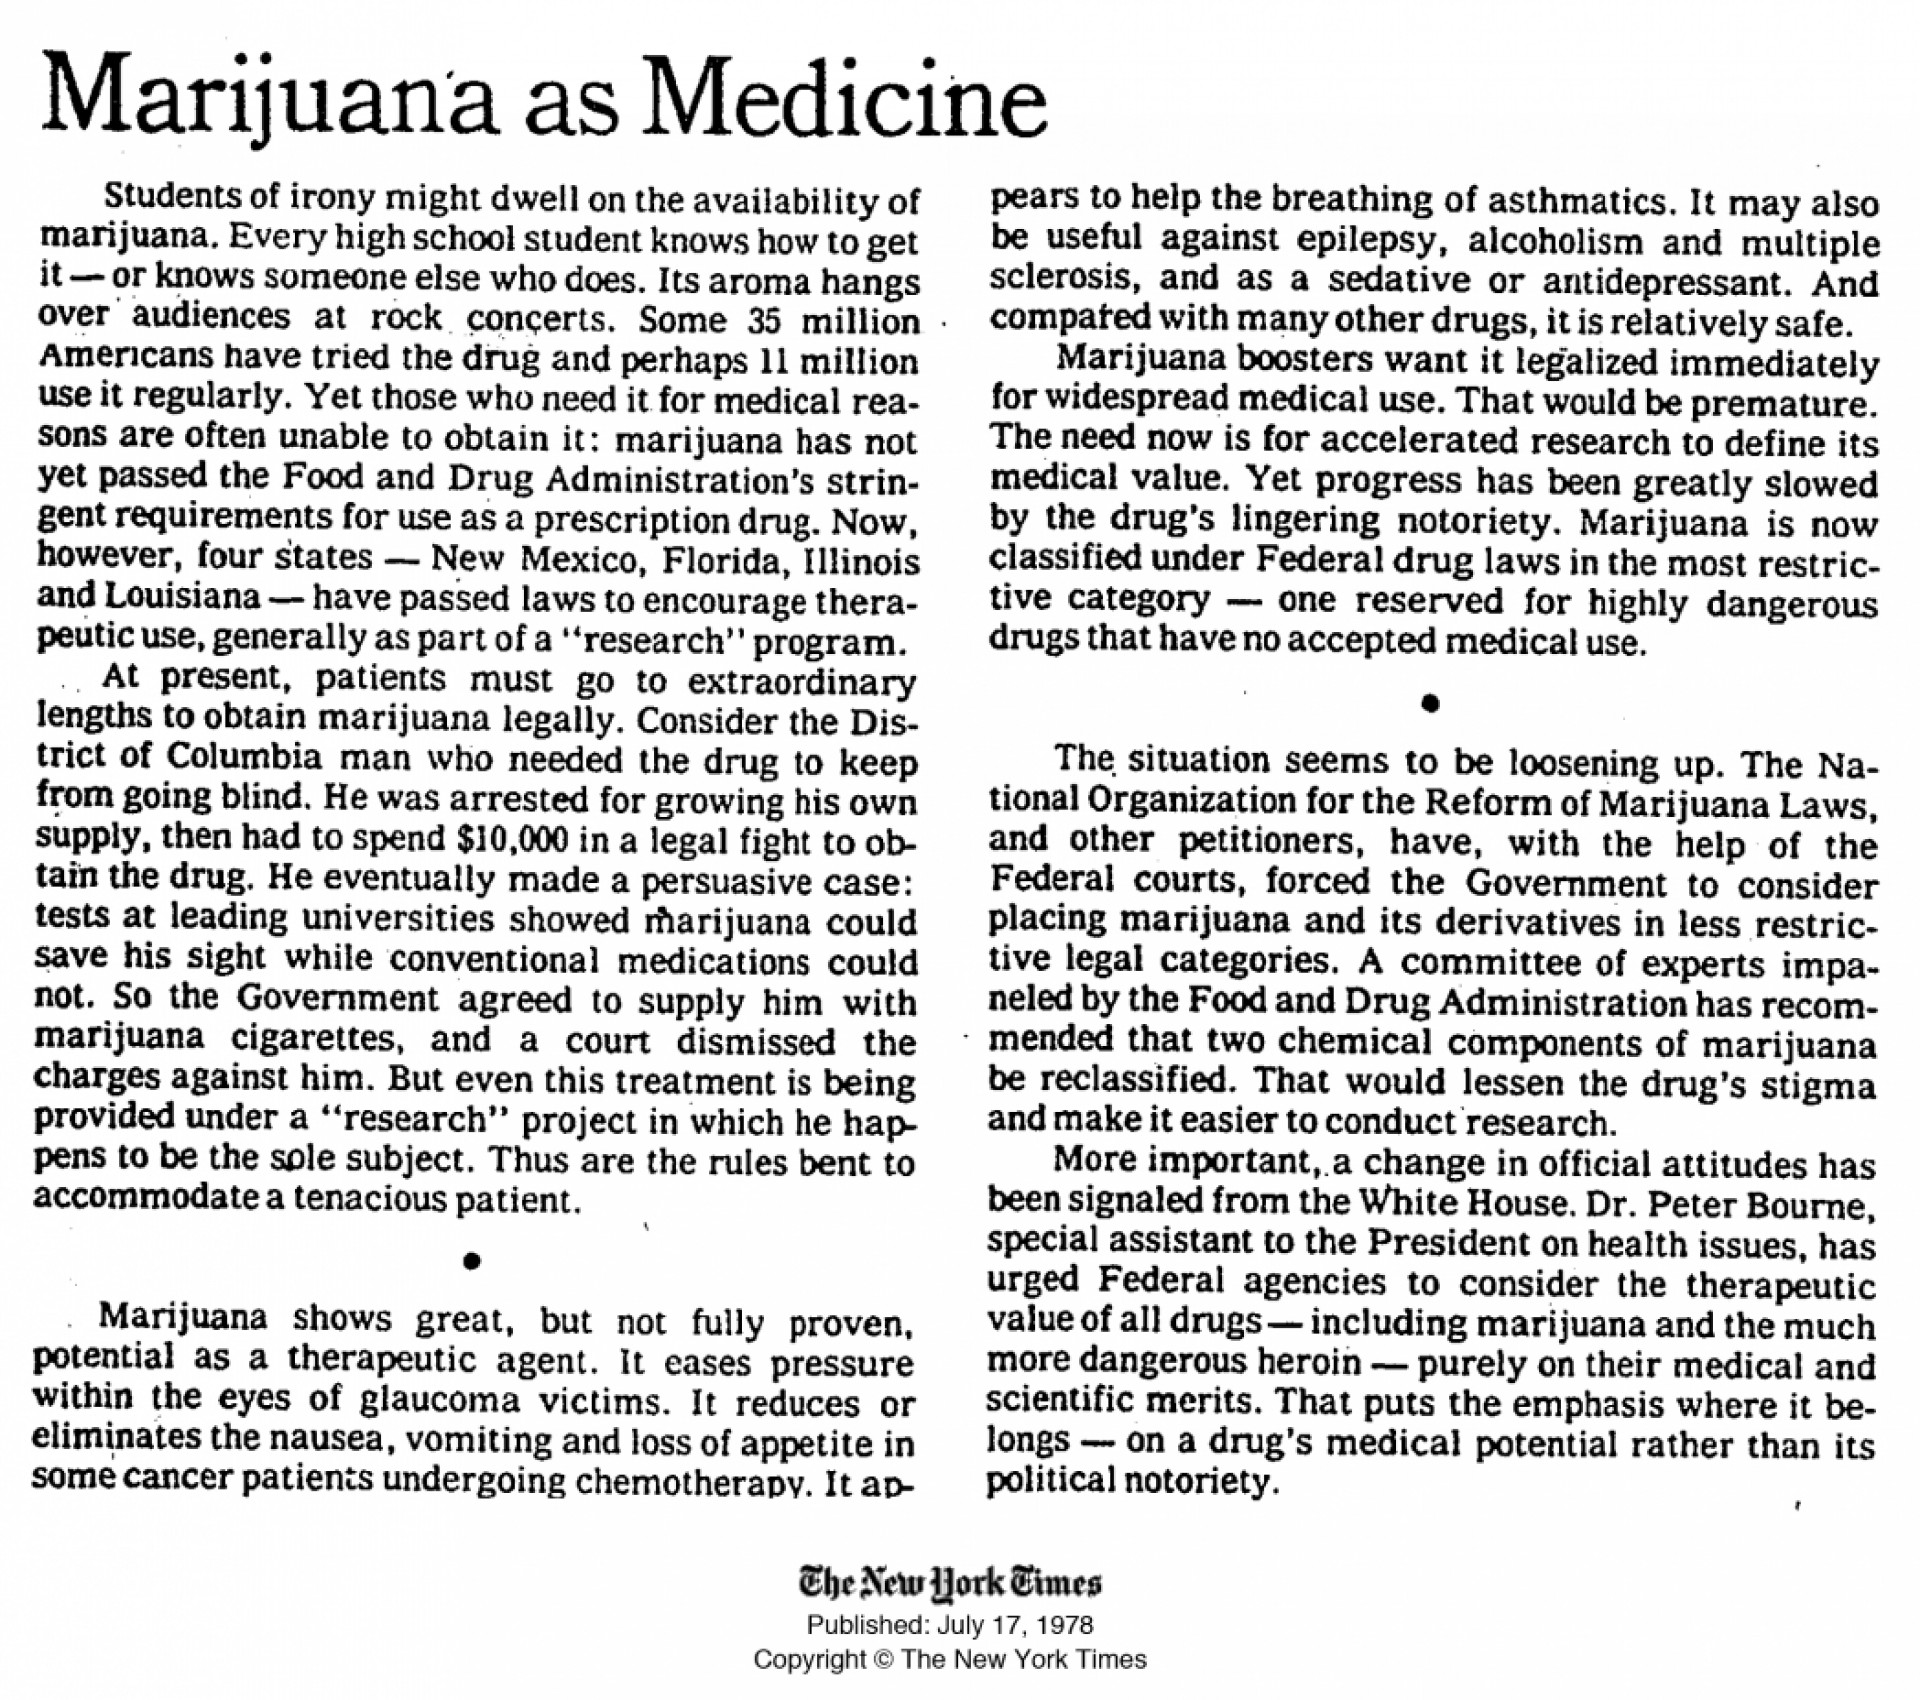 003 Essay Example On Marijuanaization Persuasive Argumentative Outline High Time Medicine July Thesis Medical Weed Topicsizing 1048x928 Why Marijuanas Should Frightening Be Legal Not 1920